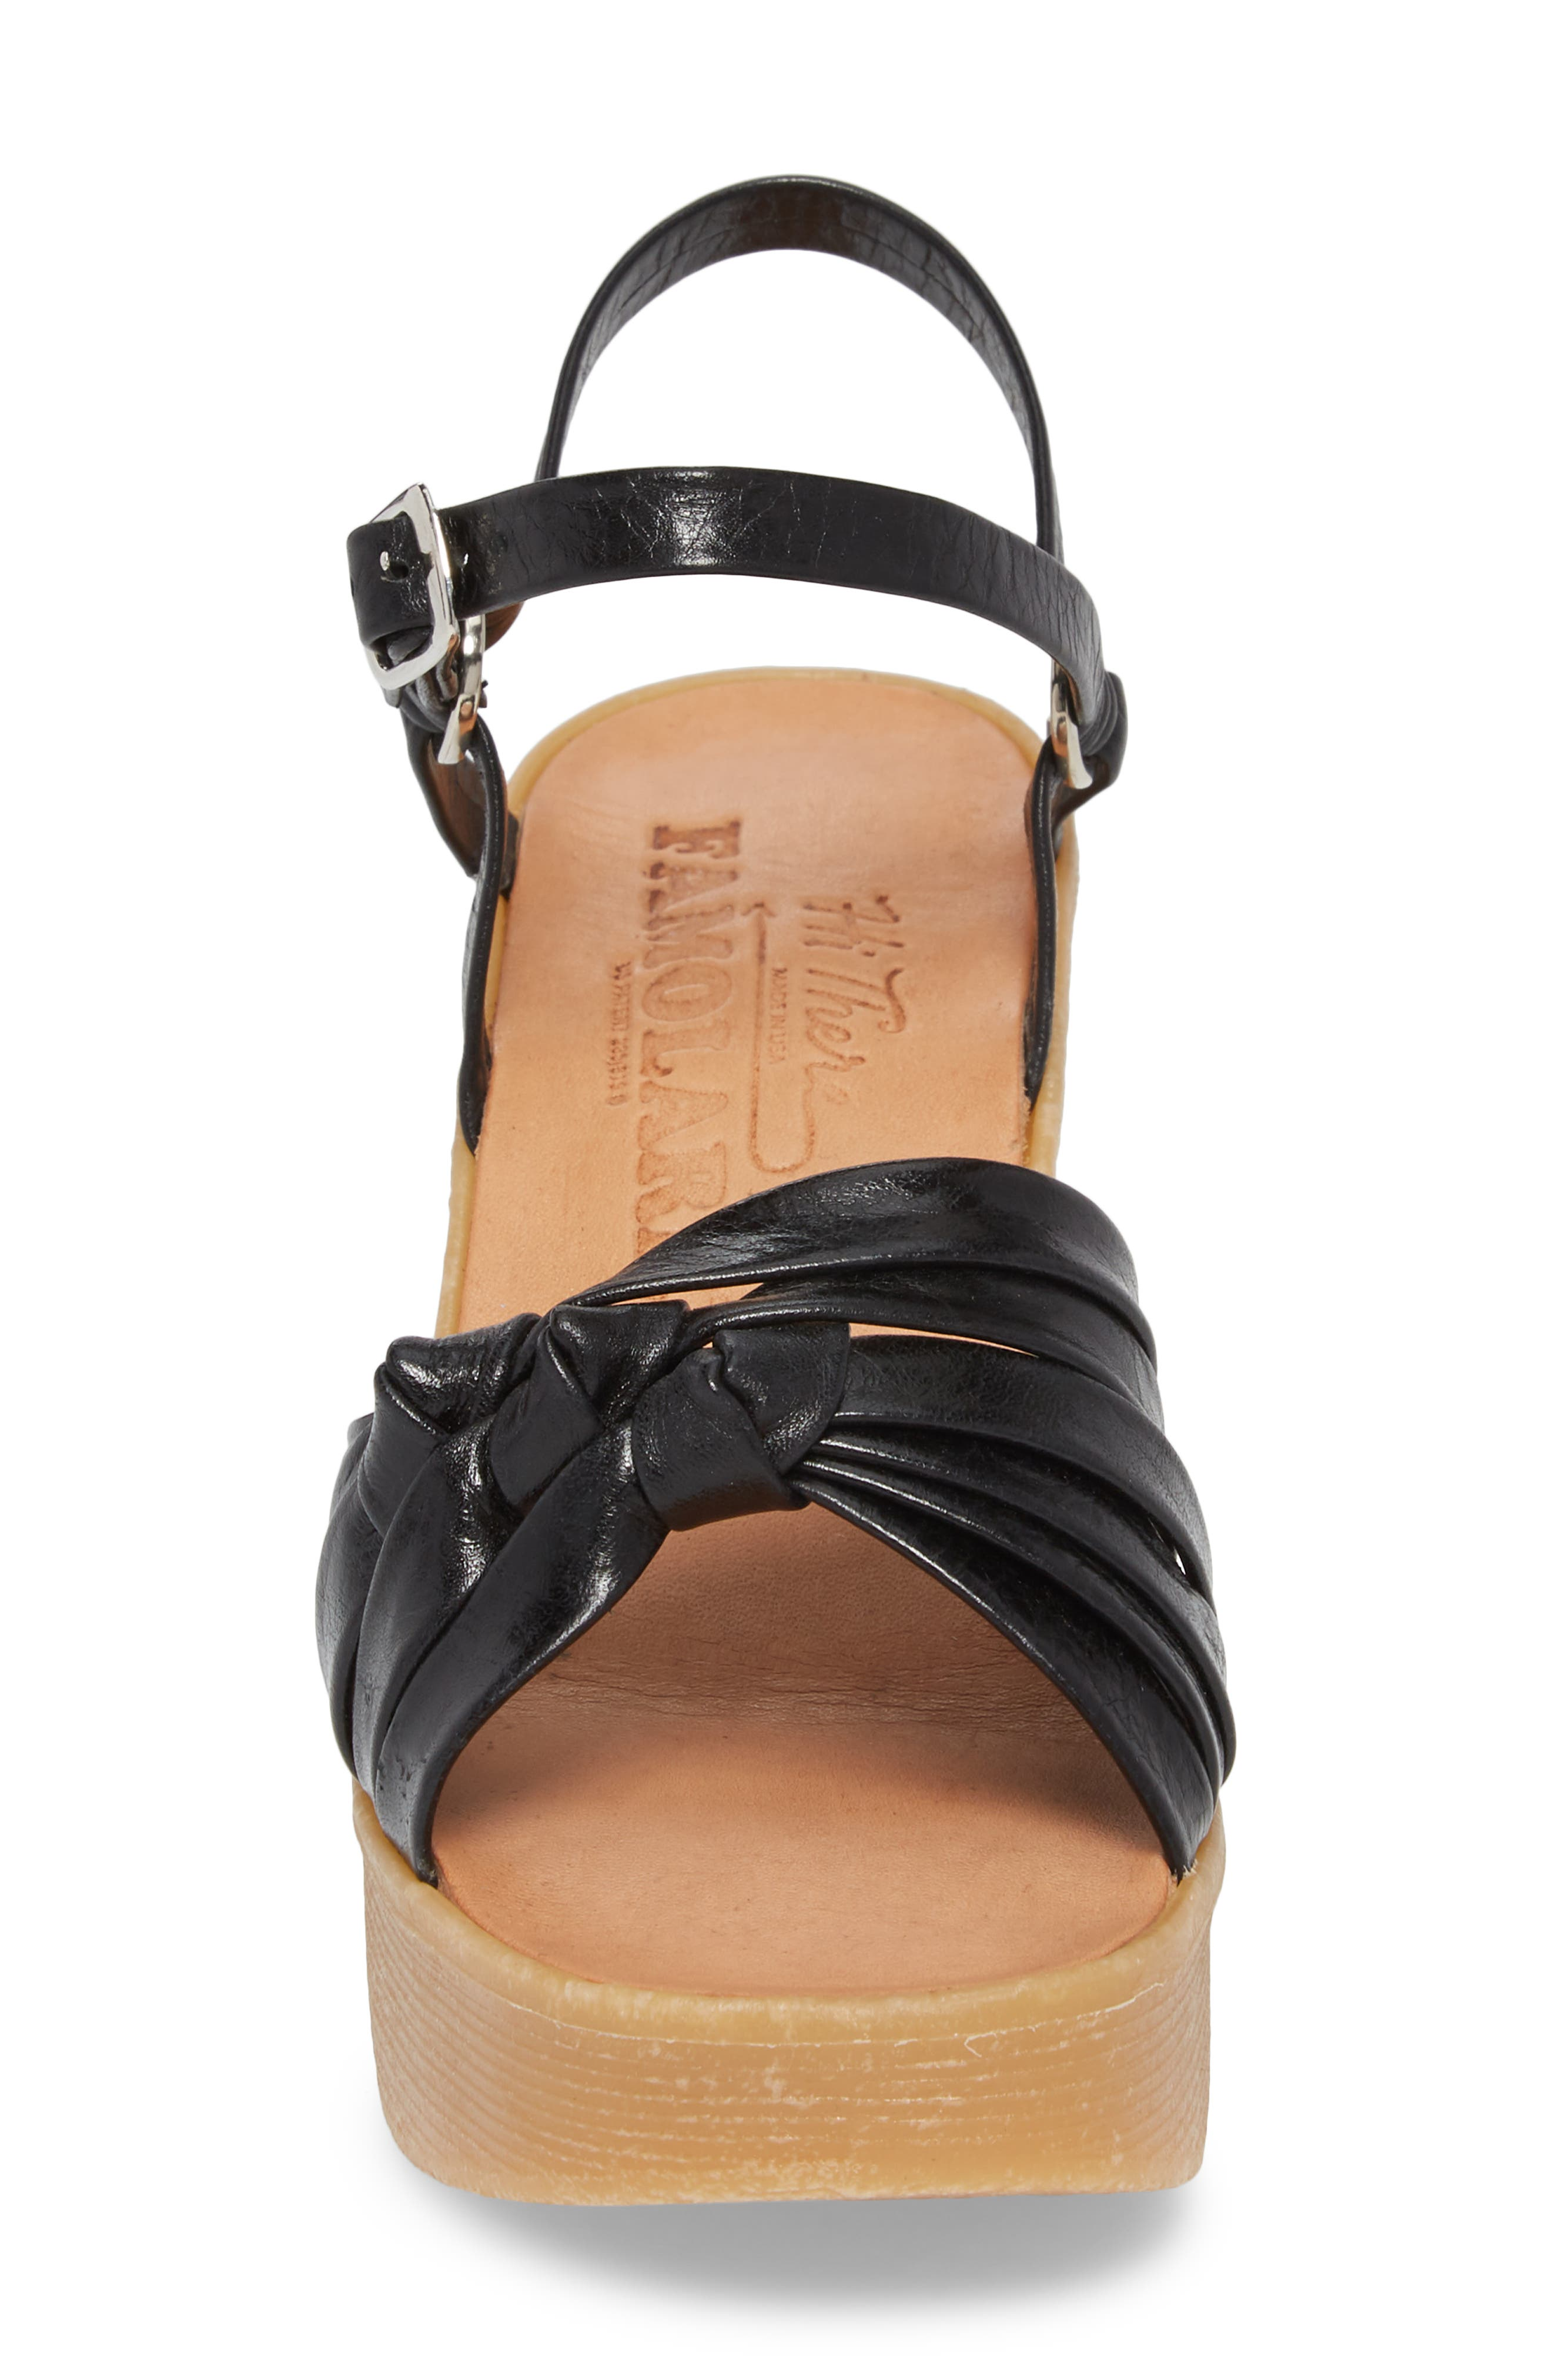 Knot So Fast Wedge Sandal,                             Alternate thumbnail 4, color,                             COAL LEATHER